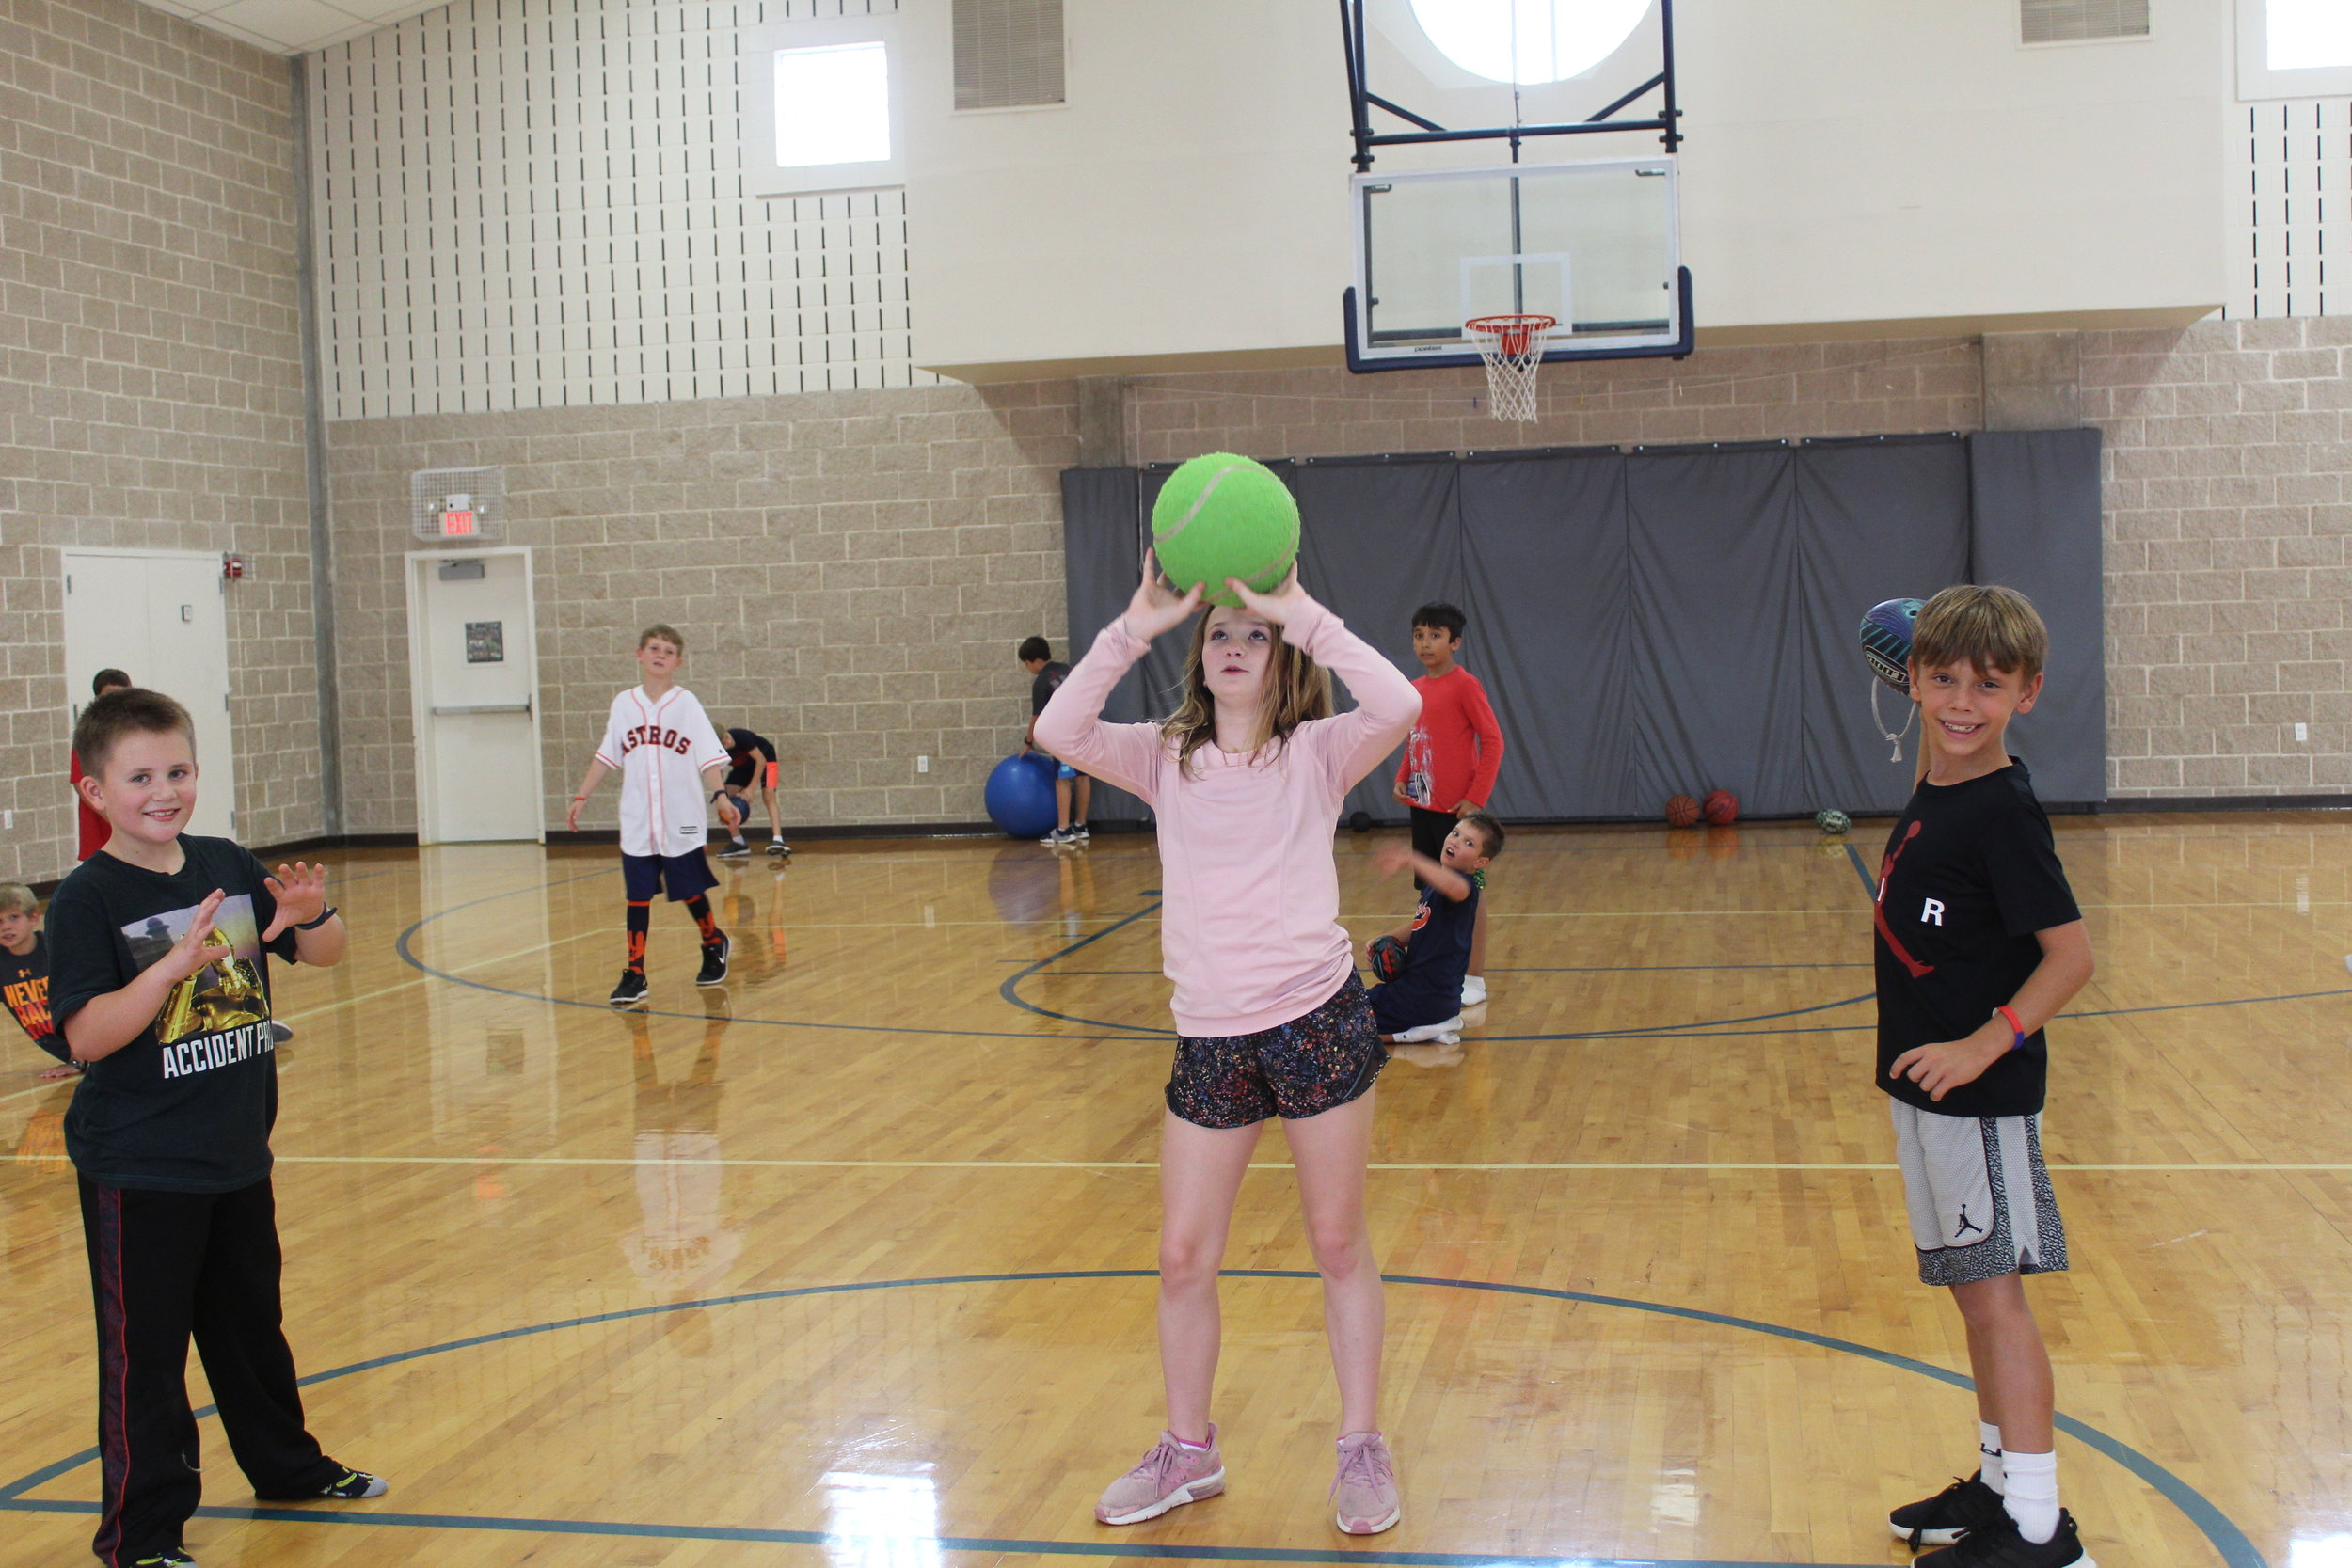 Kids on the Court - After-School program for Kindergarten through 4th grade with professional staff to lead sports and active games in the John Collier High Court.Snack Provided | Semester Fee | Registration Required | Limited SpacesNo refunds given after registration.Tuesdays K-2nd | Thursdays 3rd-4th from | 3pm-5pmRegistration for 2019-2020 Kids on the Court (K-2nd) Registration for 2019-2020 Kids on the Court (3rd-4th)